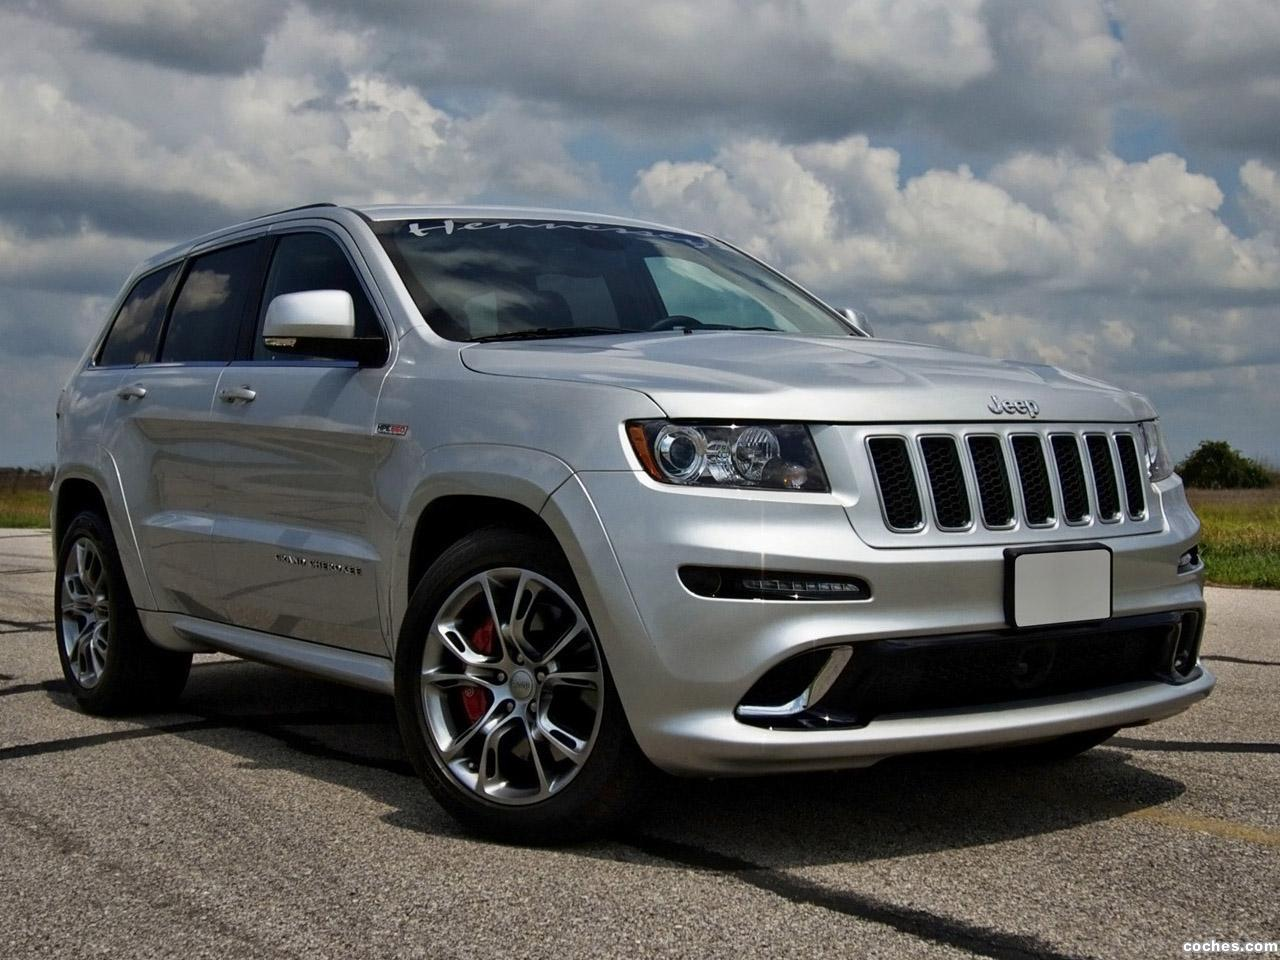 fotos de jeep hennessey grand cherokee srt8 392 hpe650 2013. Black Bedroom Furniture Sets. Home Design Ideas